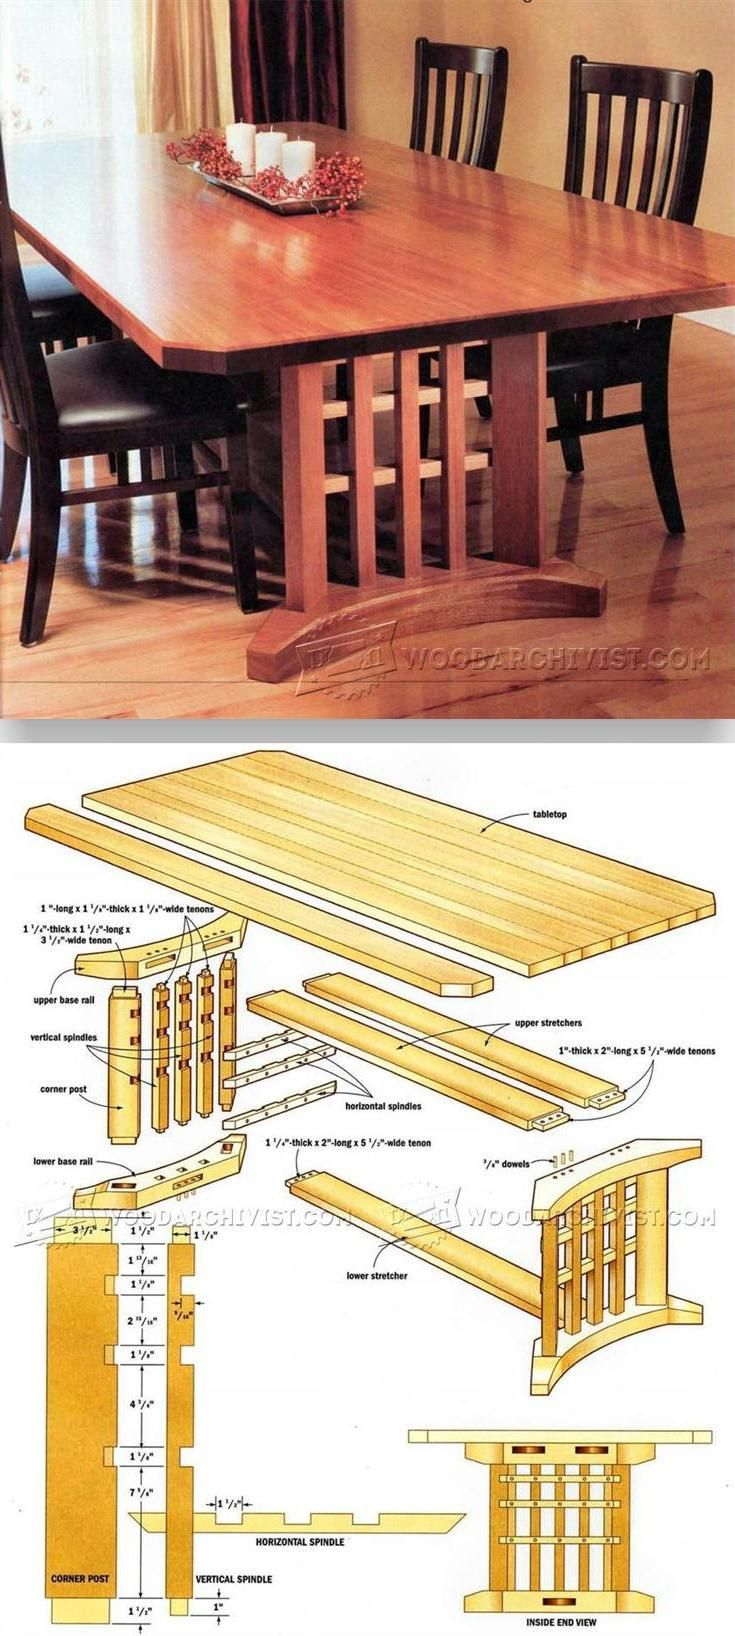 Louisiana cypress swings amp things inc - Trestle Table Plans Furniture Plans And Projects Woodarchivist Com